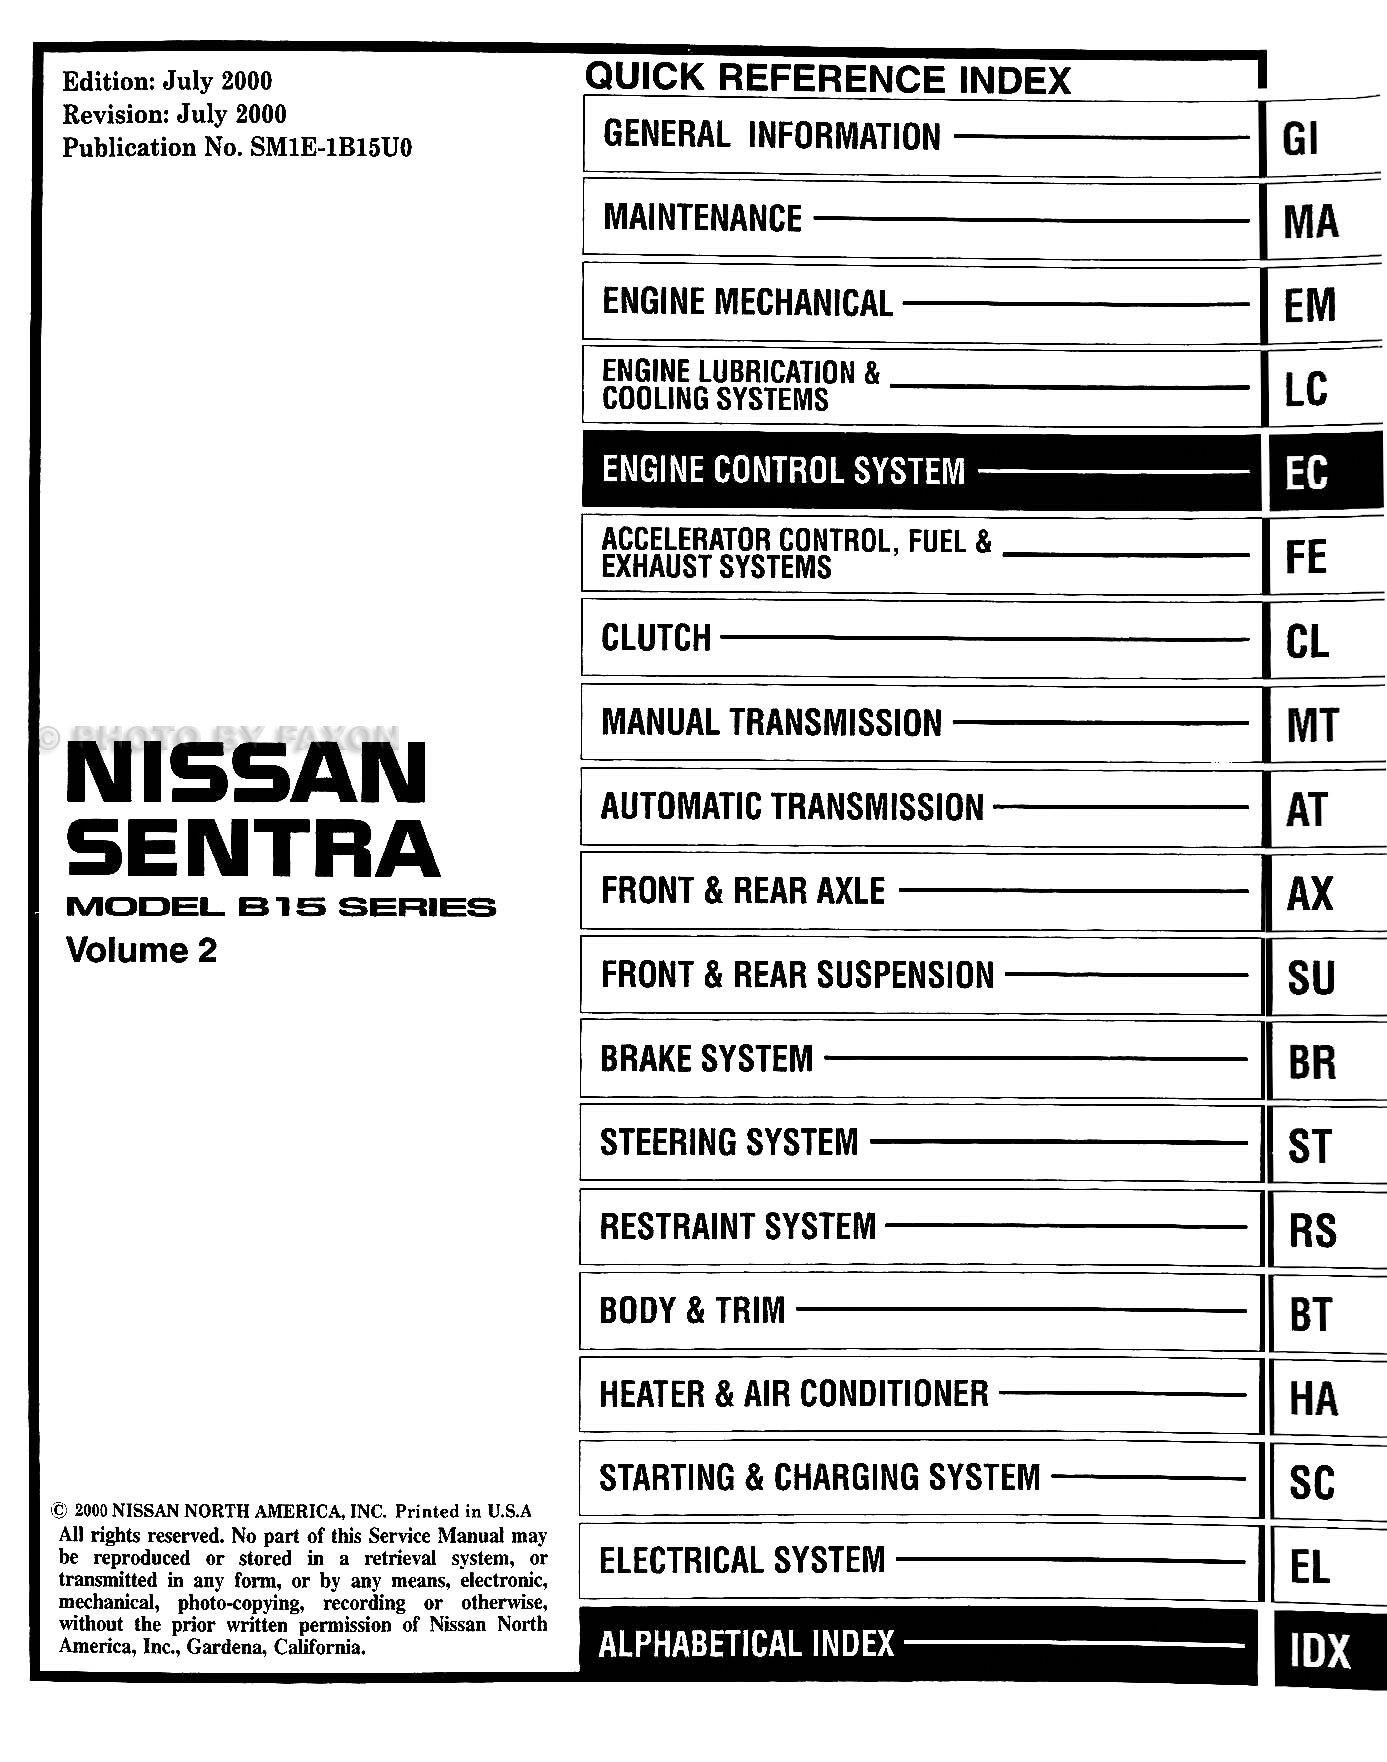 2001 Nissan Sentra CD-ROM Repair Manual · Table of Contents